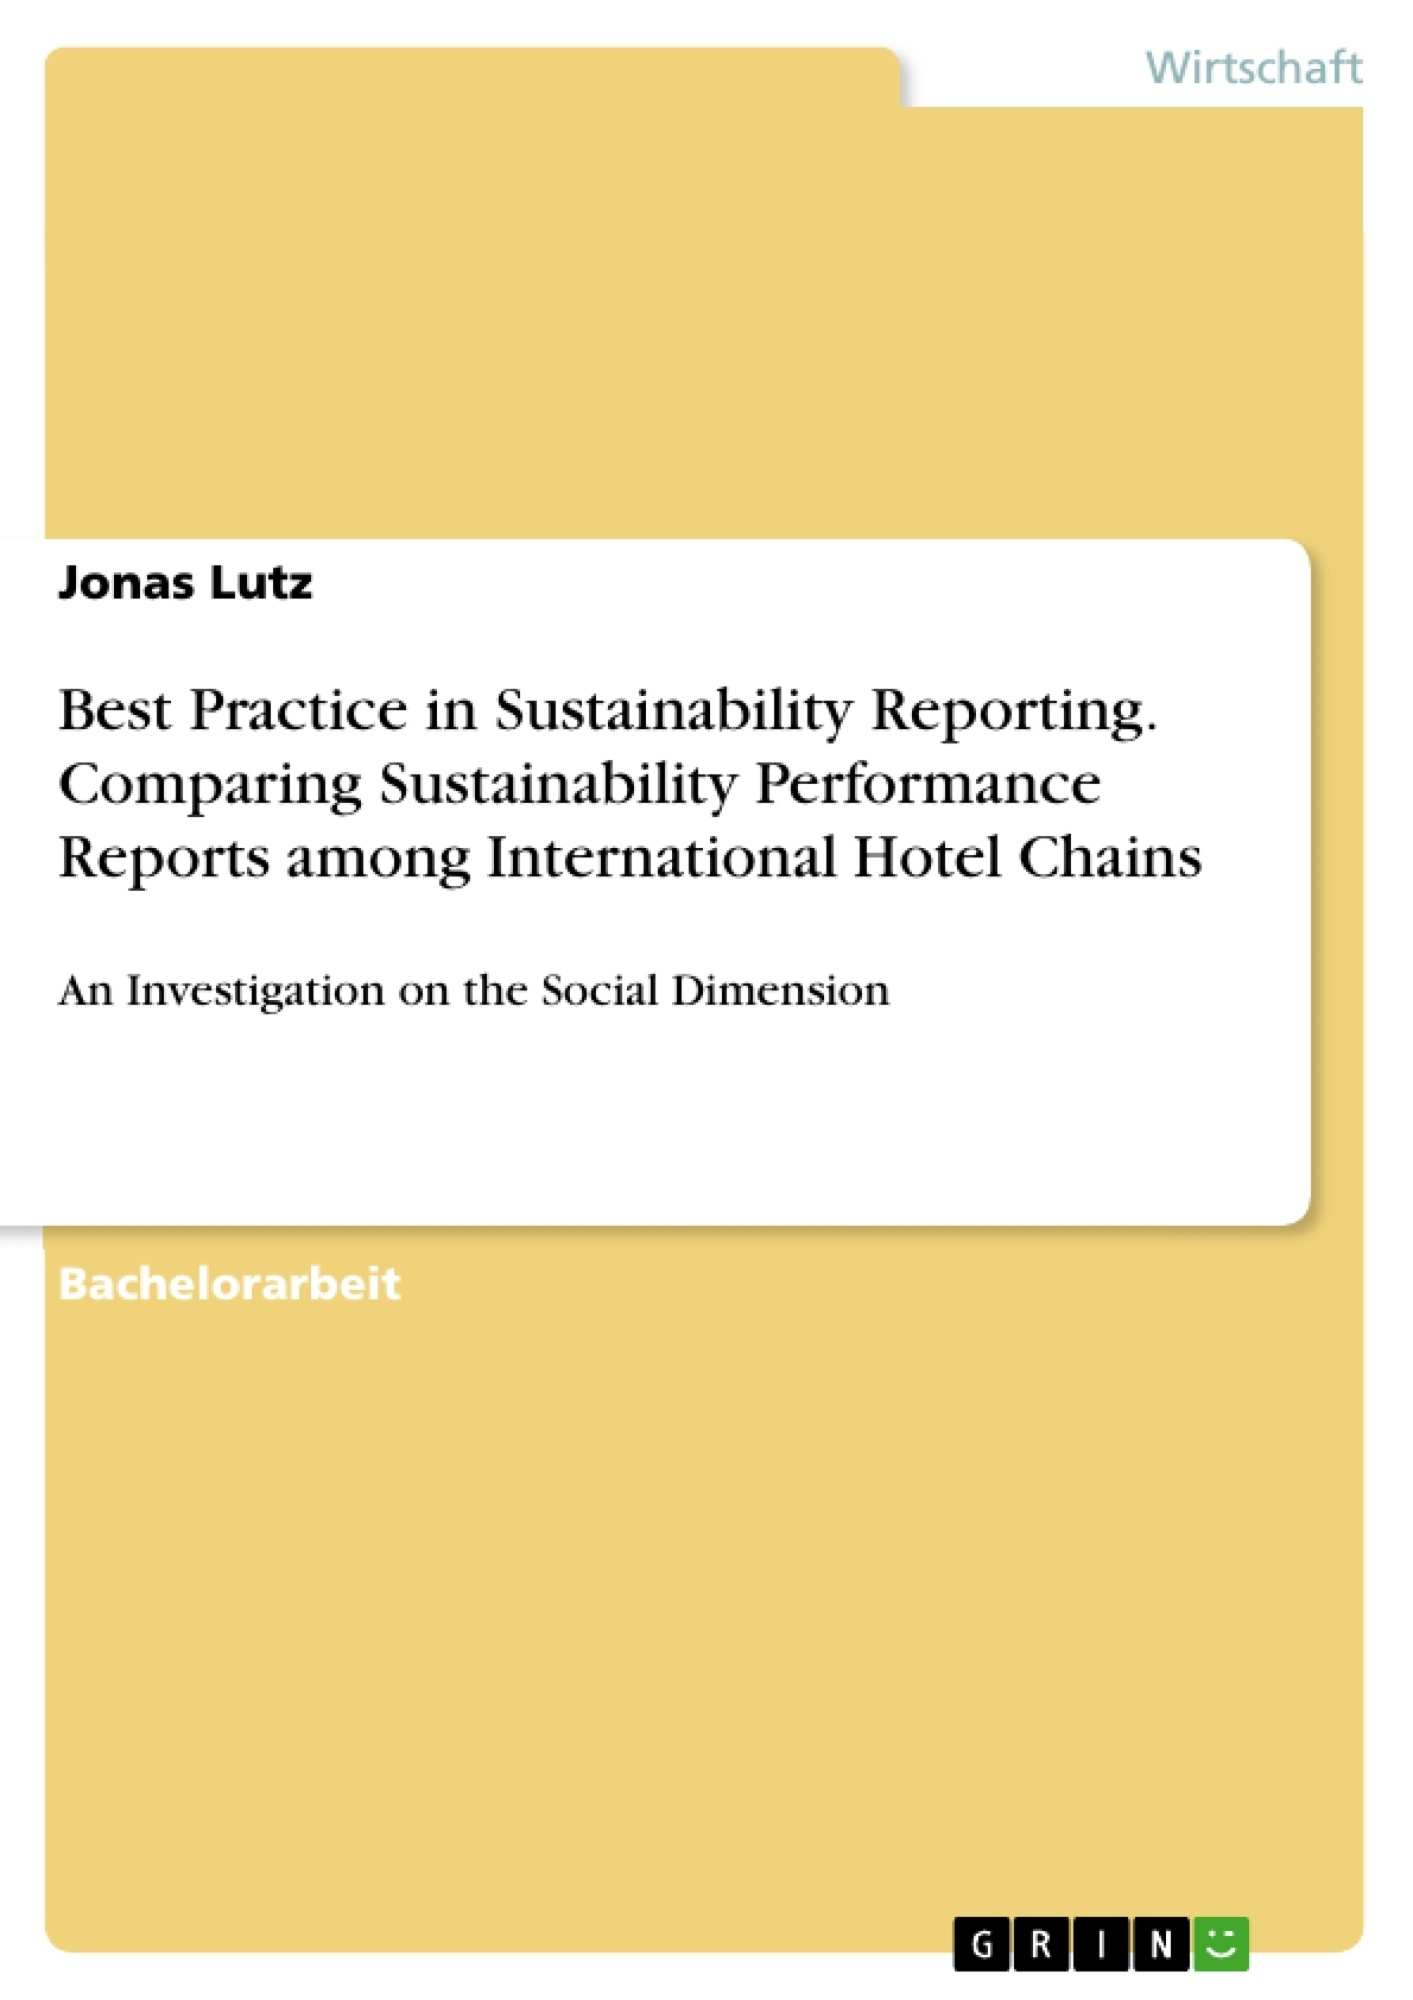 Titel: Best Practice in Sustainability Reporting. Comparing Sustainability Performance Reports among International Hotel Chains